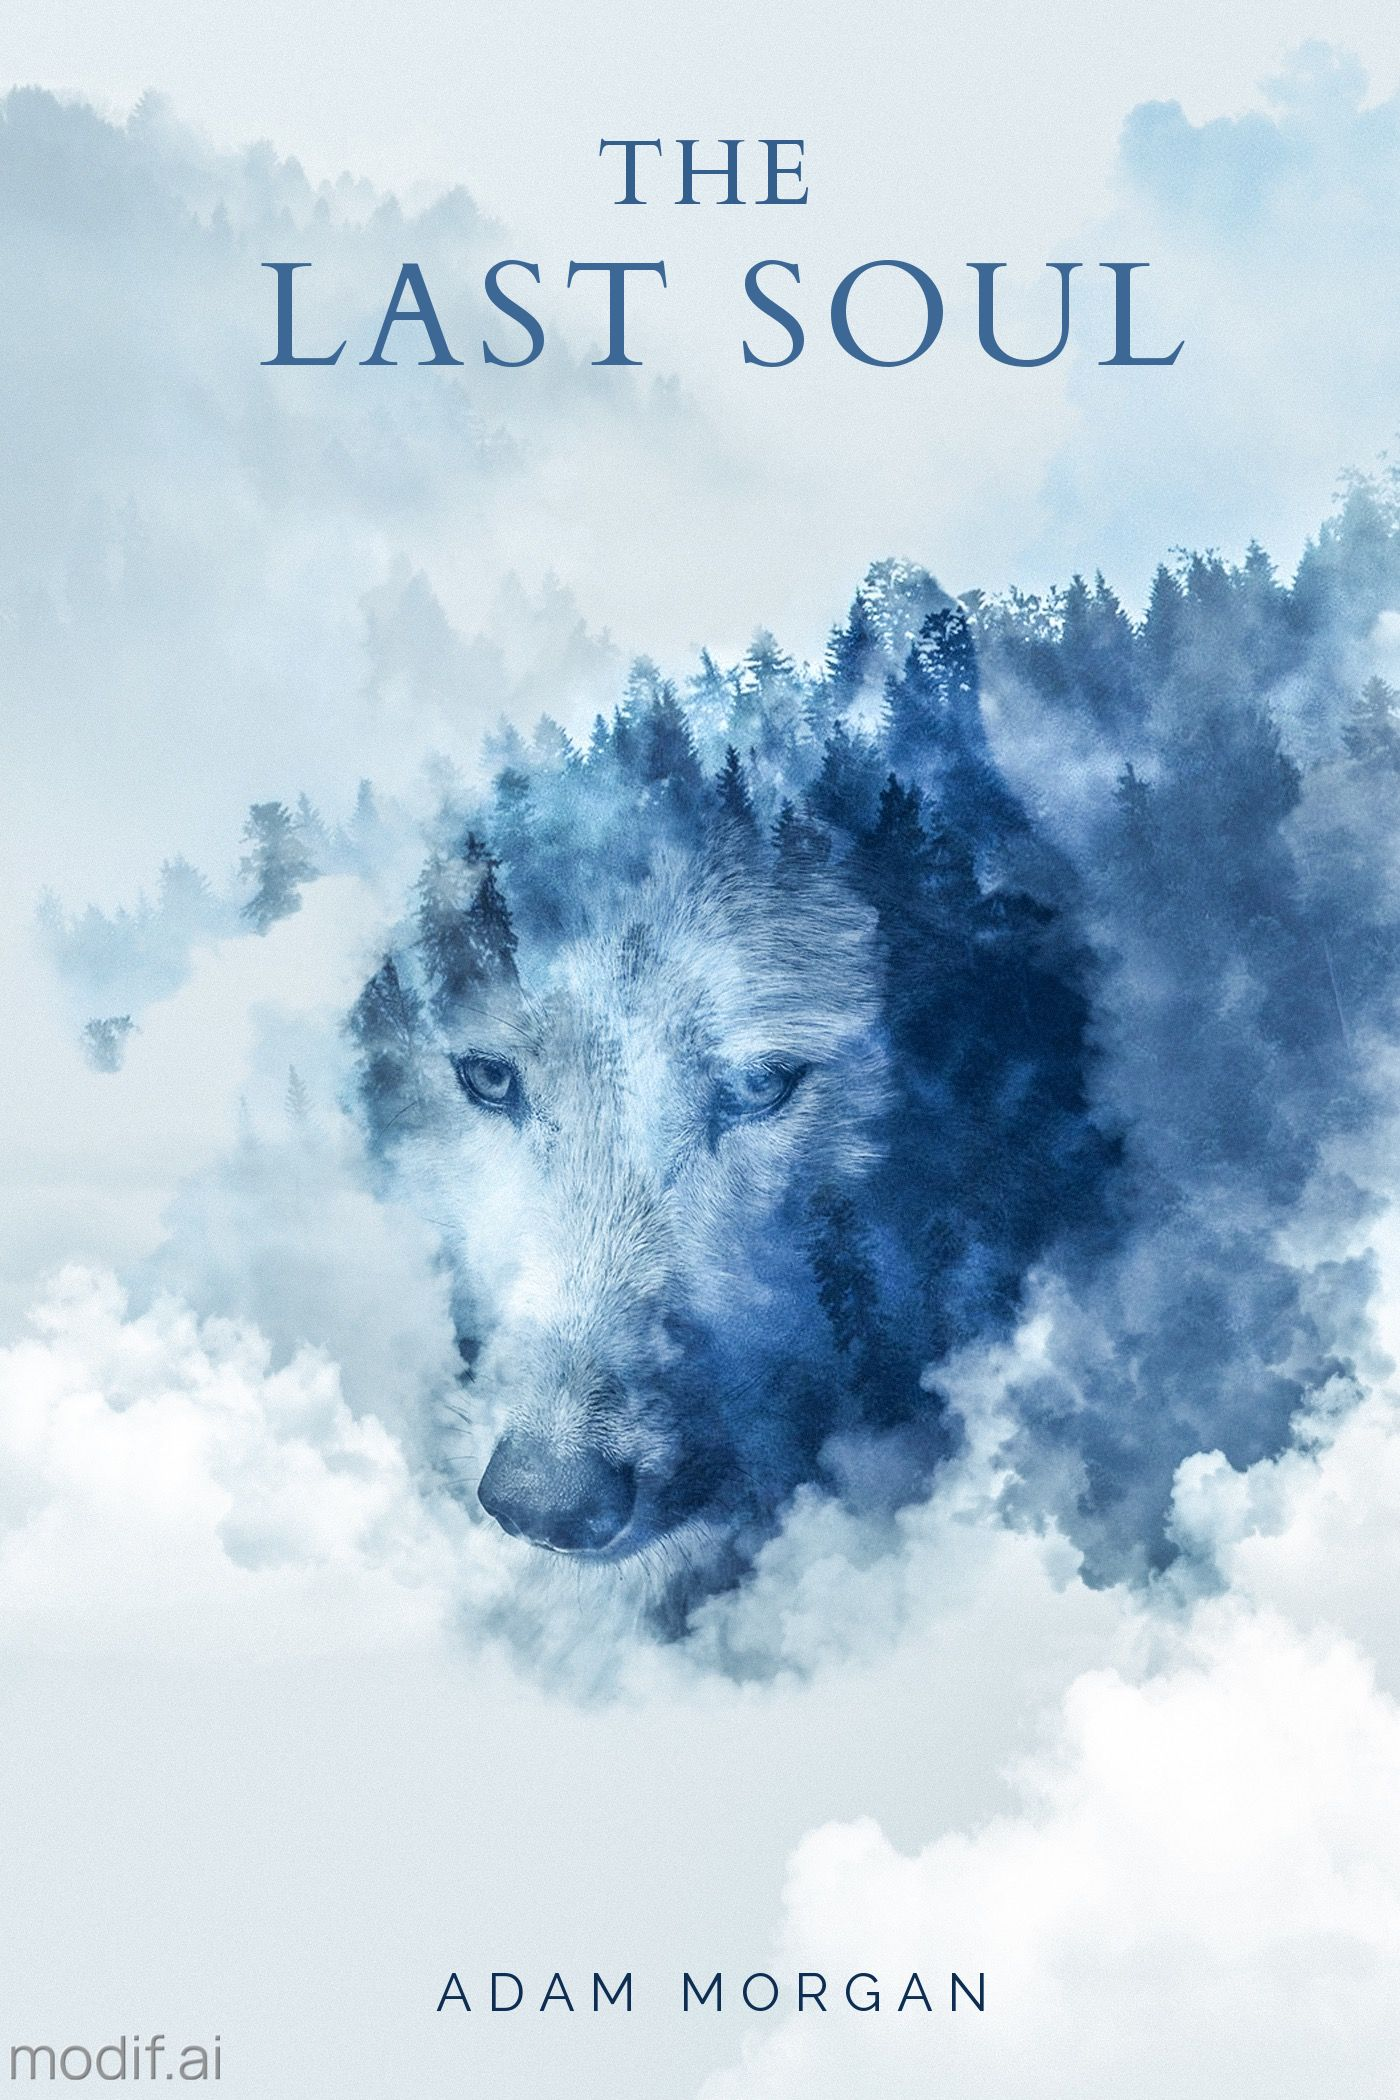 Foggy Wolf Book Cover Template